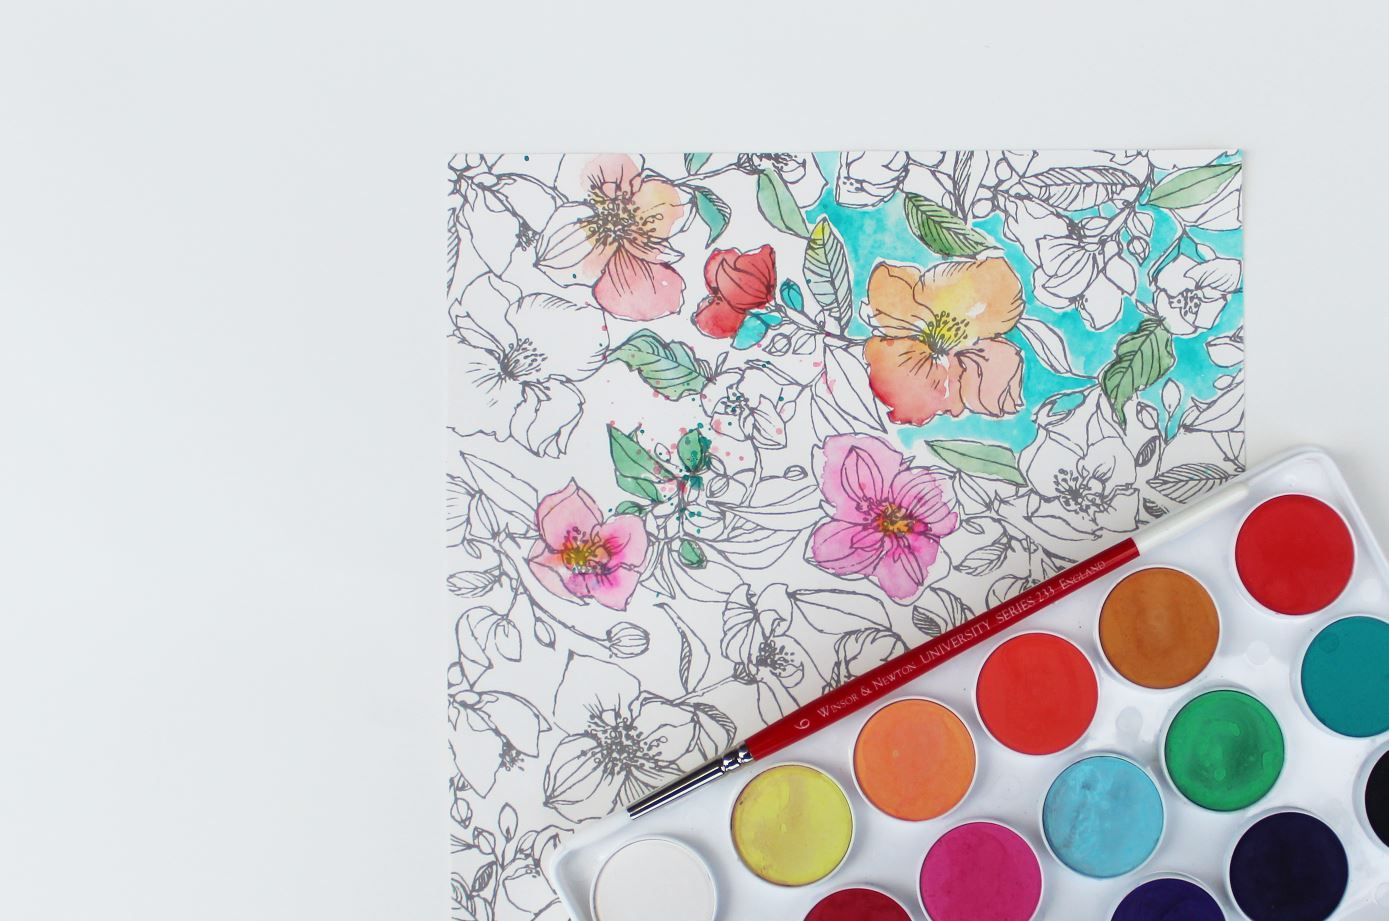 Take Your Coloring Adventure To The Next Level With Watercolor